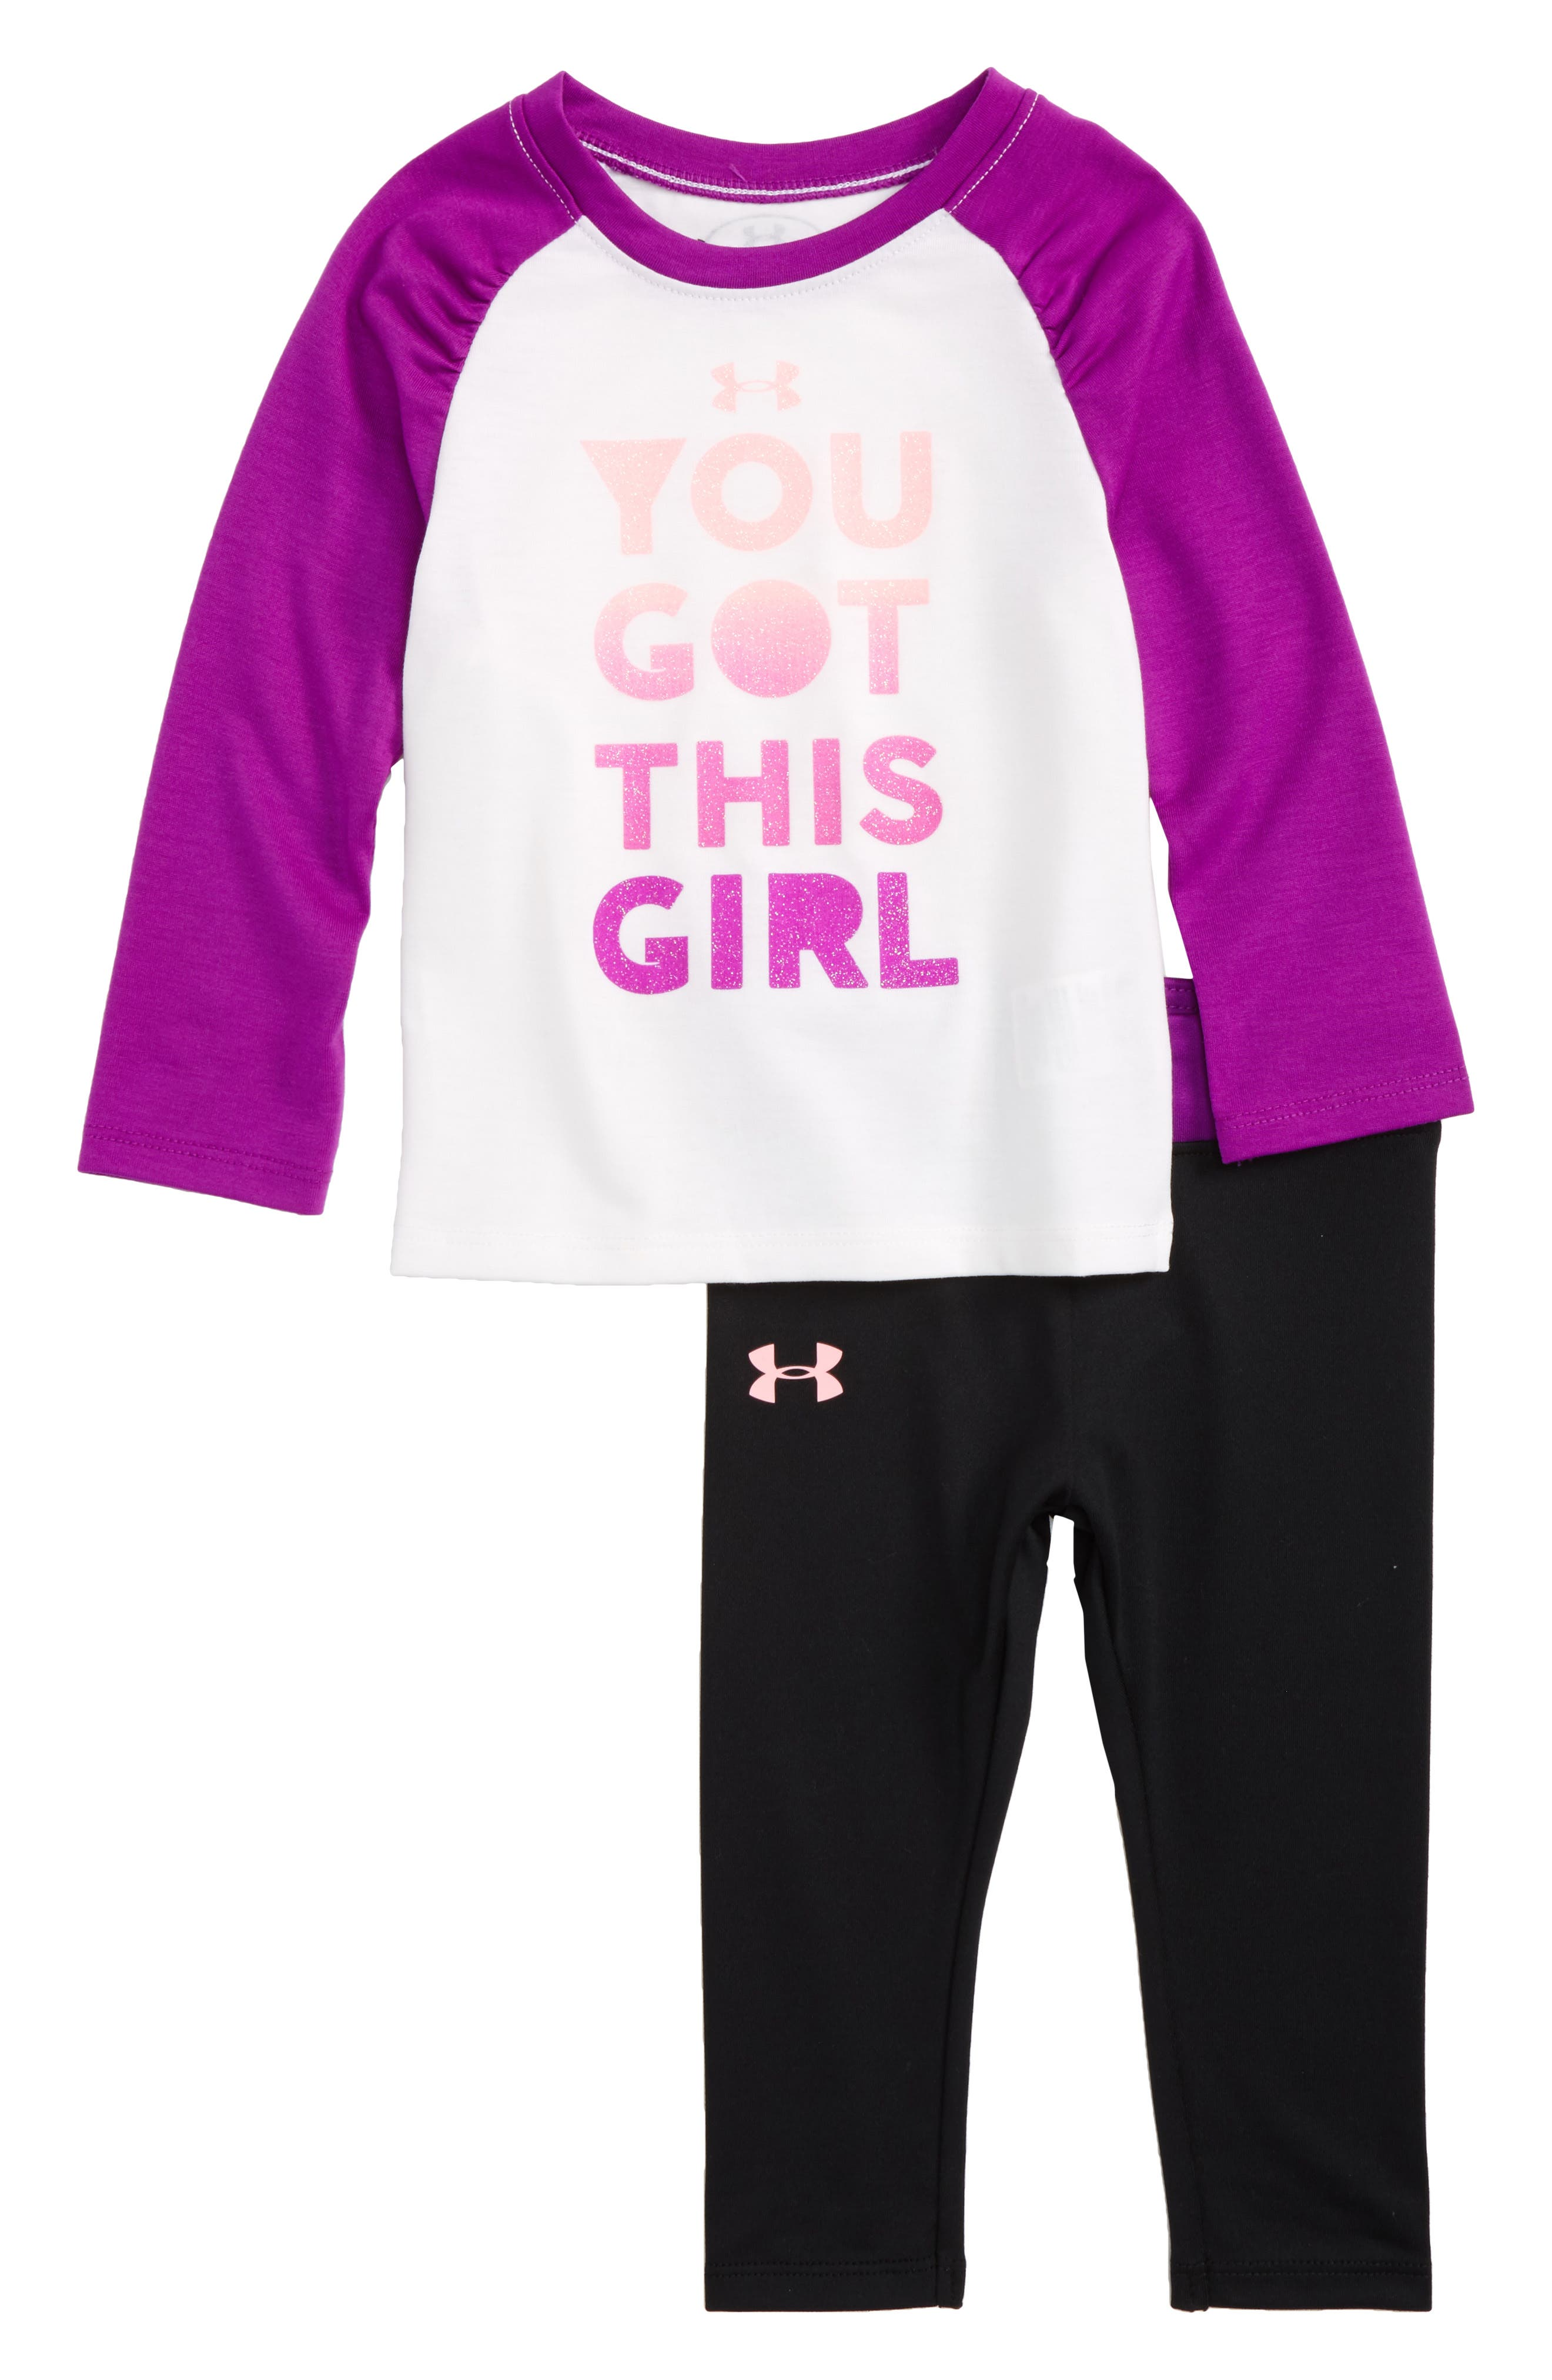 Under Armour You Got This Girl Tee & Pants Set (Baby Girls)